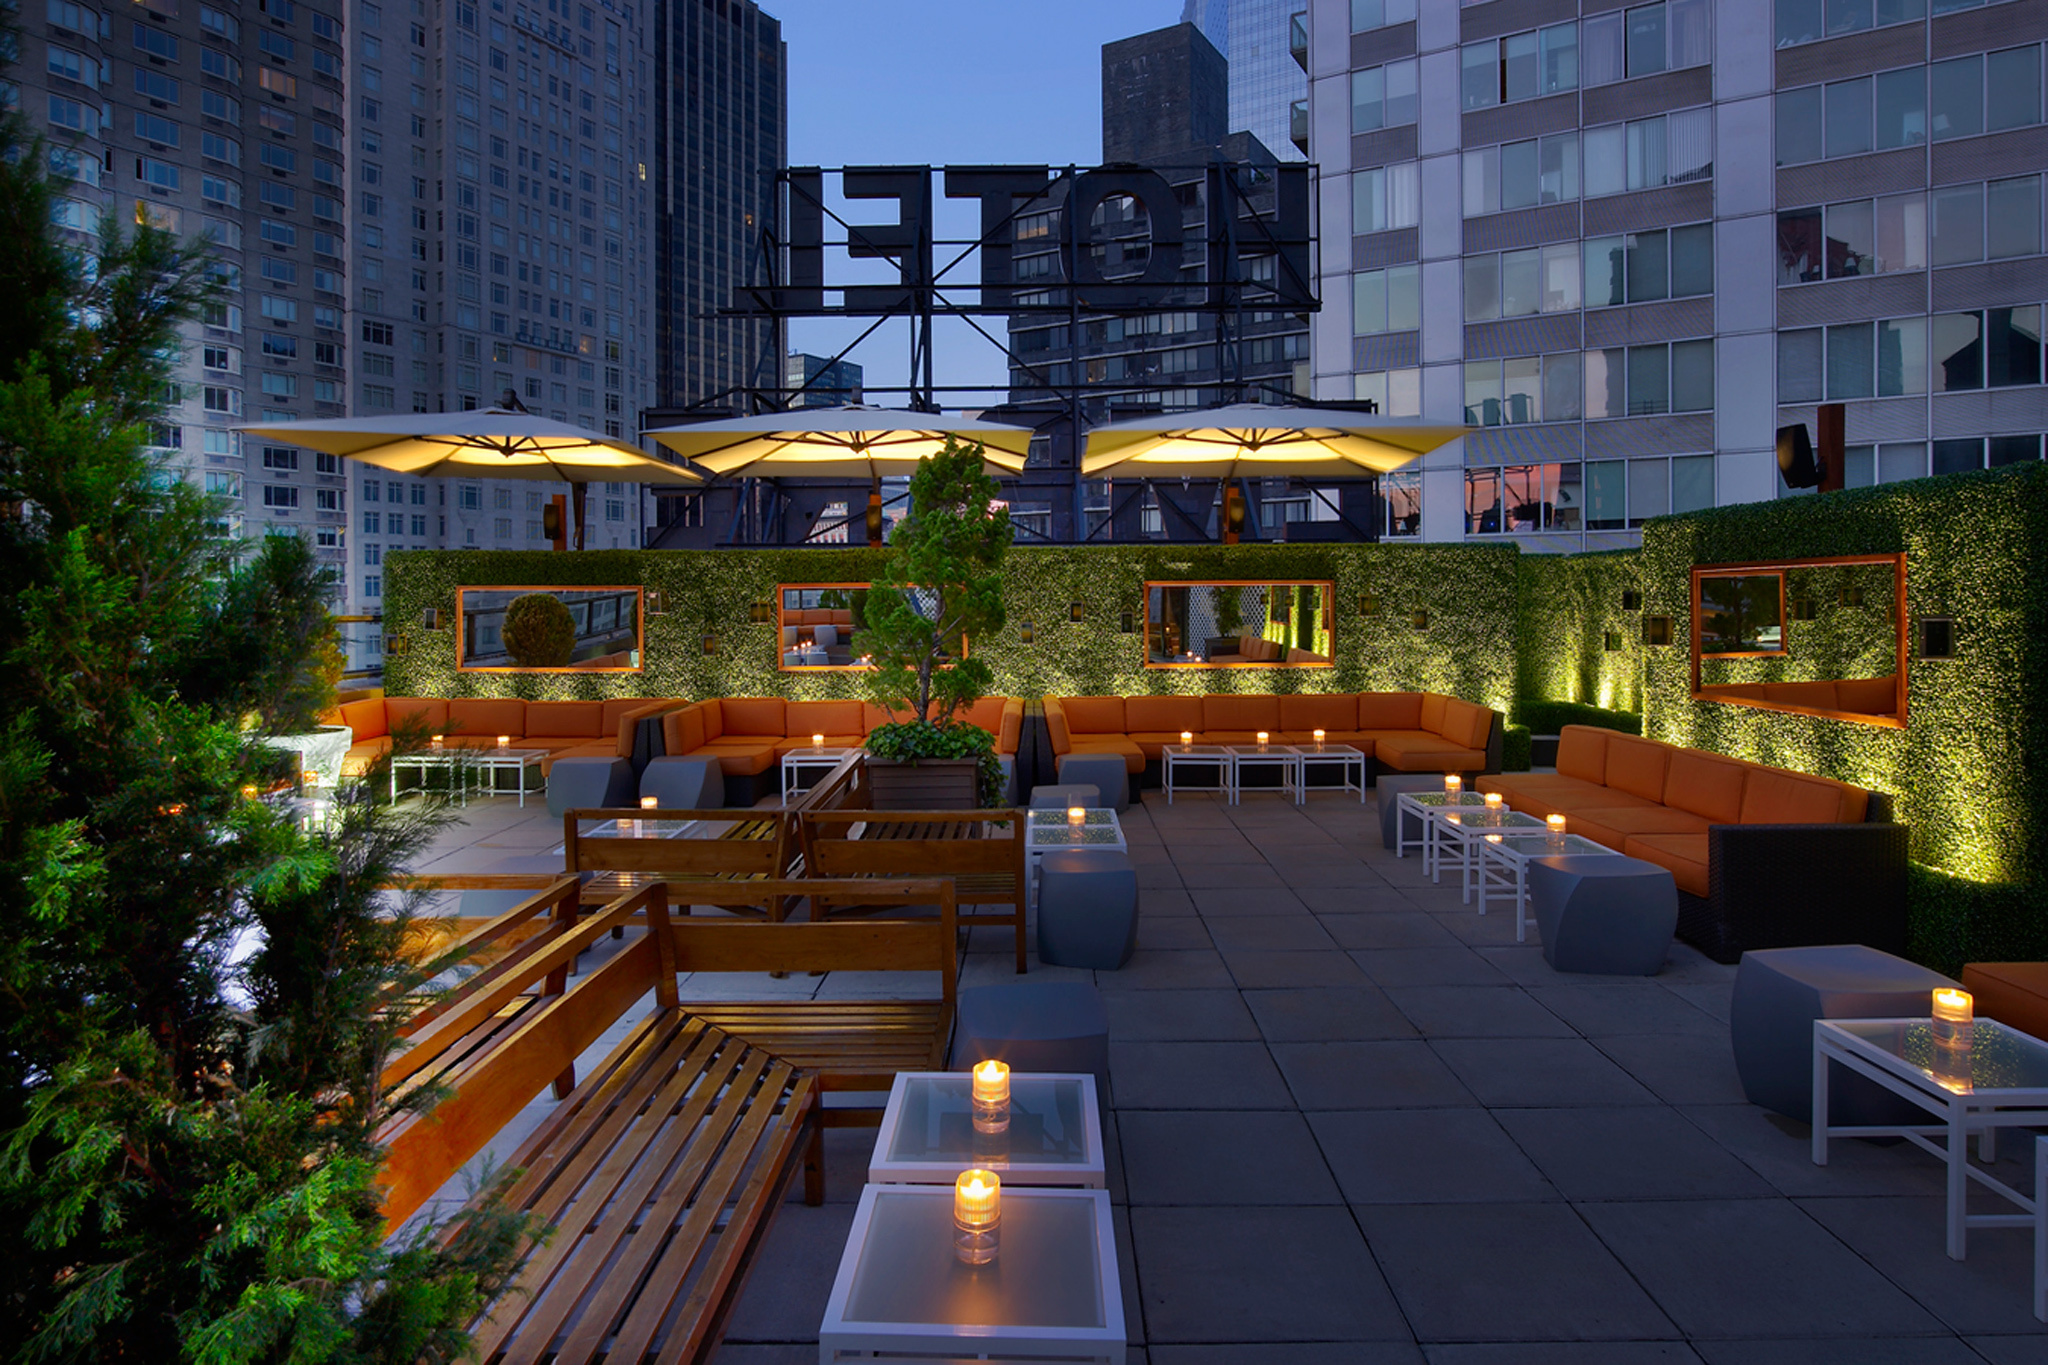 The Empire Hotel Rooftop's east terrace lounge